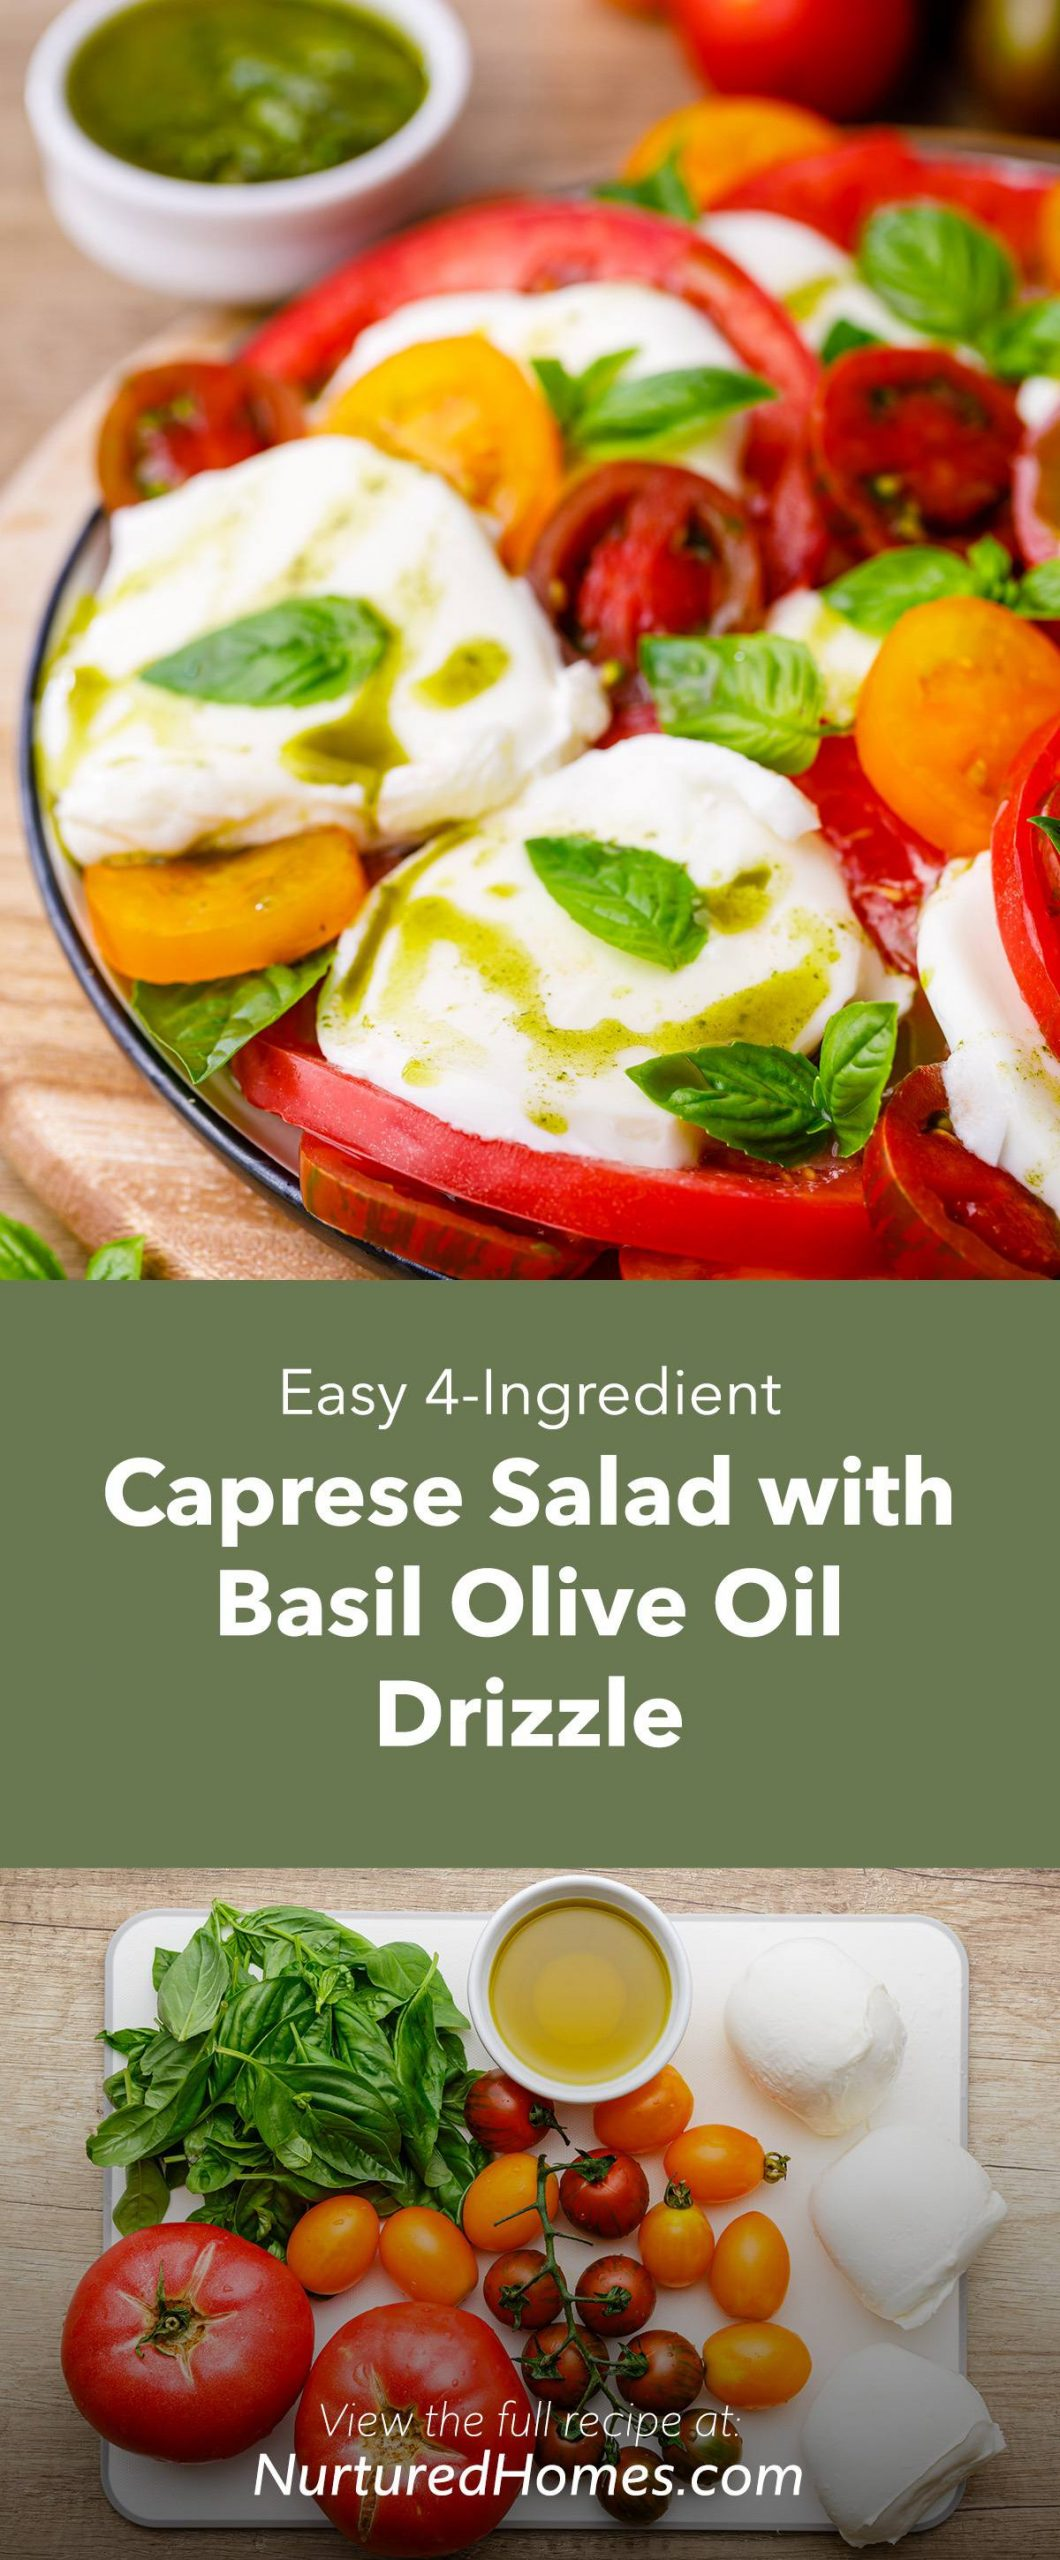 Easy 4-Ingredient Caprese Salad with Basil Olive Oil Drizzle